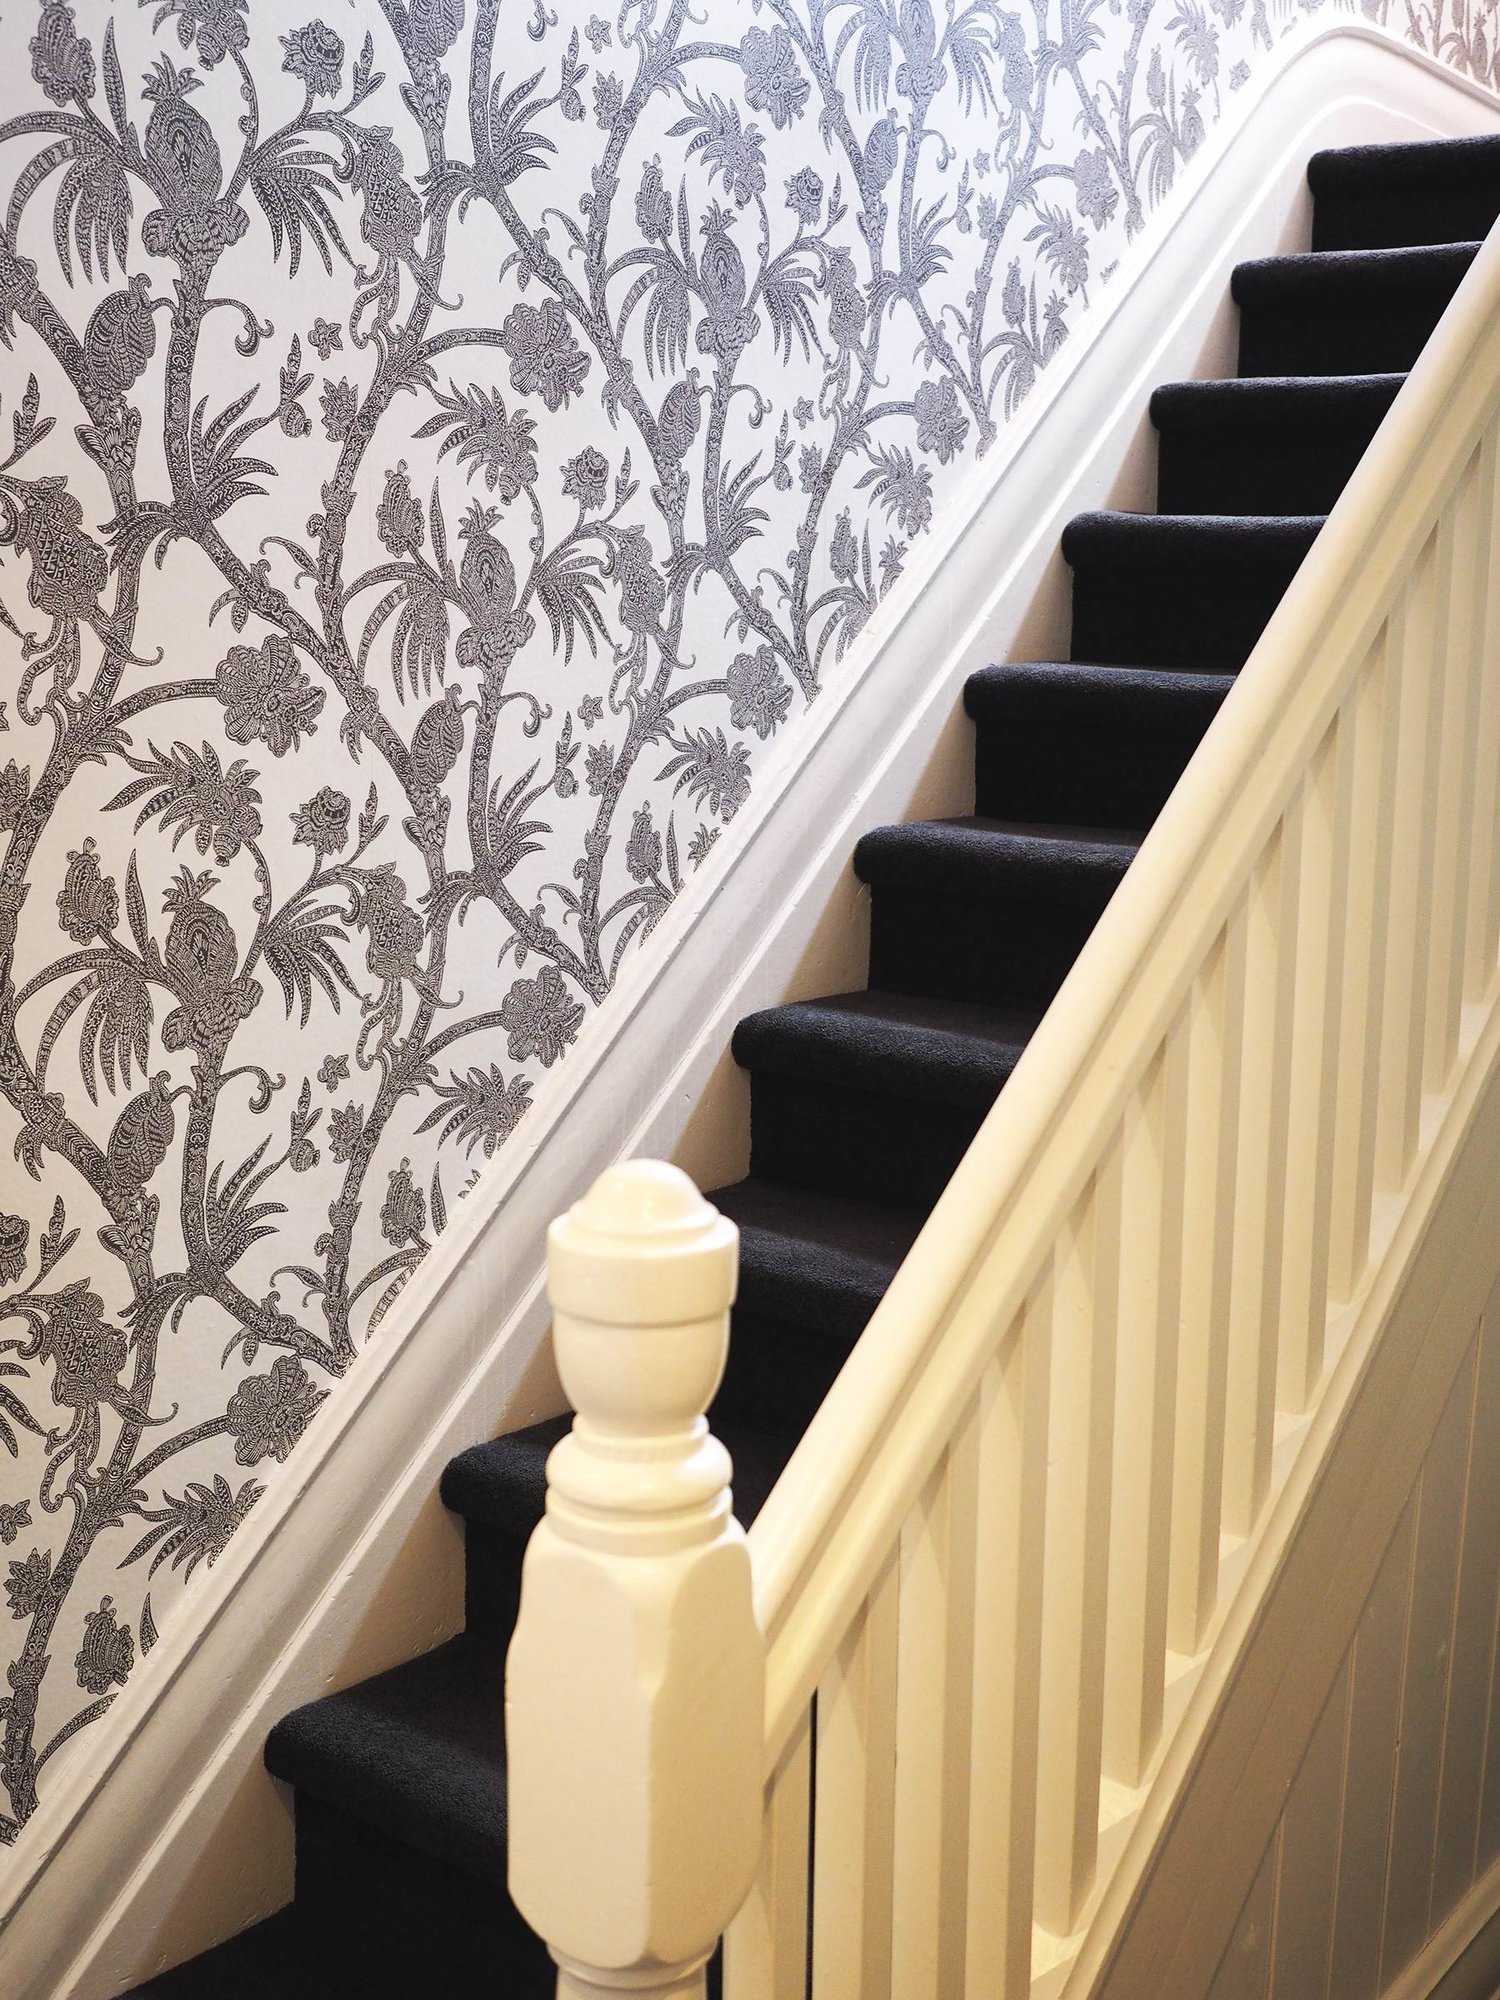 up, up, up past dramatic wallpaper twirls - The main bedroom was relocated upstairs to take advantage of the incredible views, so we worked with the original staircase to create a fun journey between upstairs & downstairs. American wallpaper in a monochrome colourway brings in a touch of the botanical setting, in an elegant sweep of twirled leaves & stems.